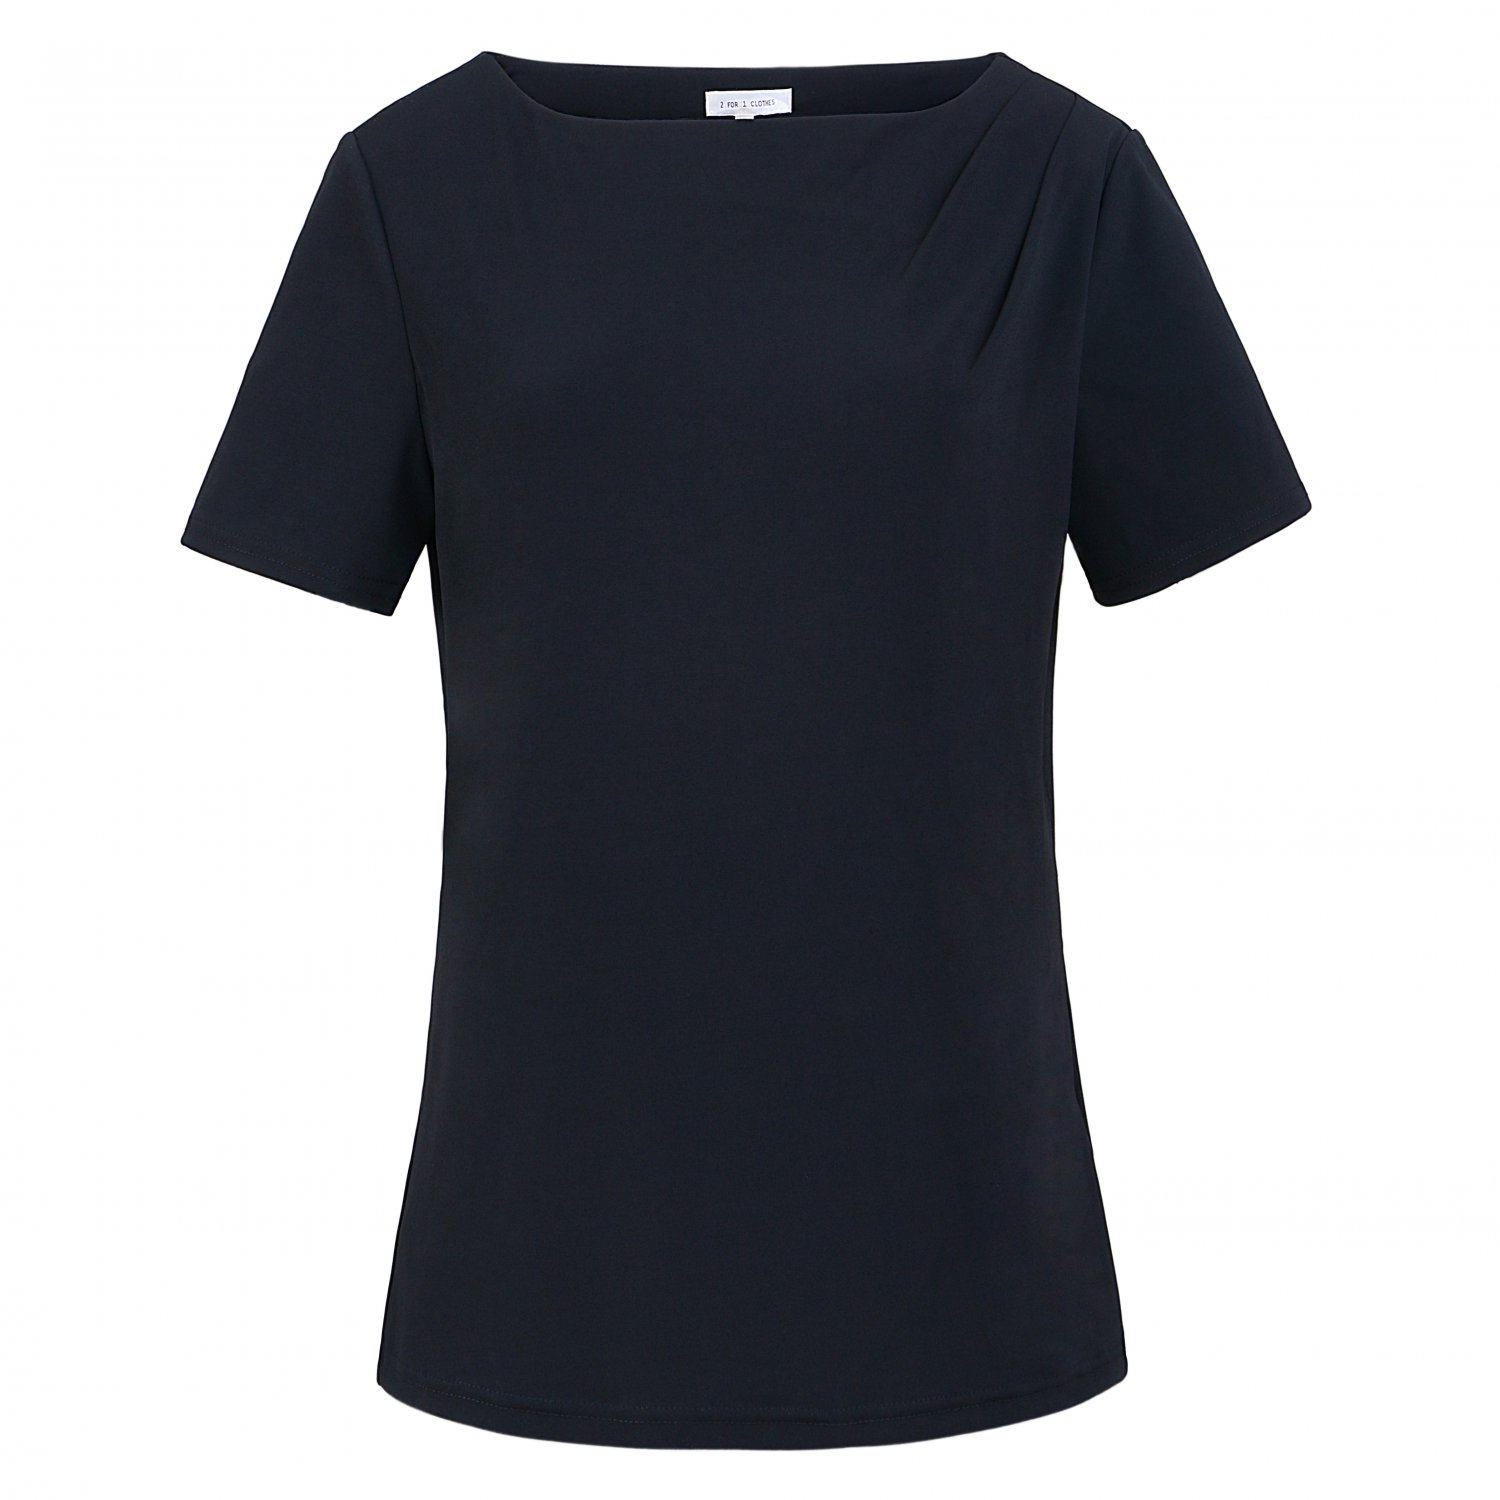 2 FOR Clothes Short Sleeve Jersey Knit Top,S,M,L,XL